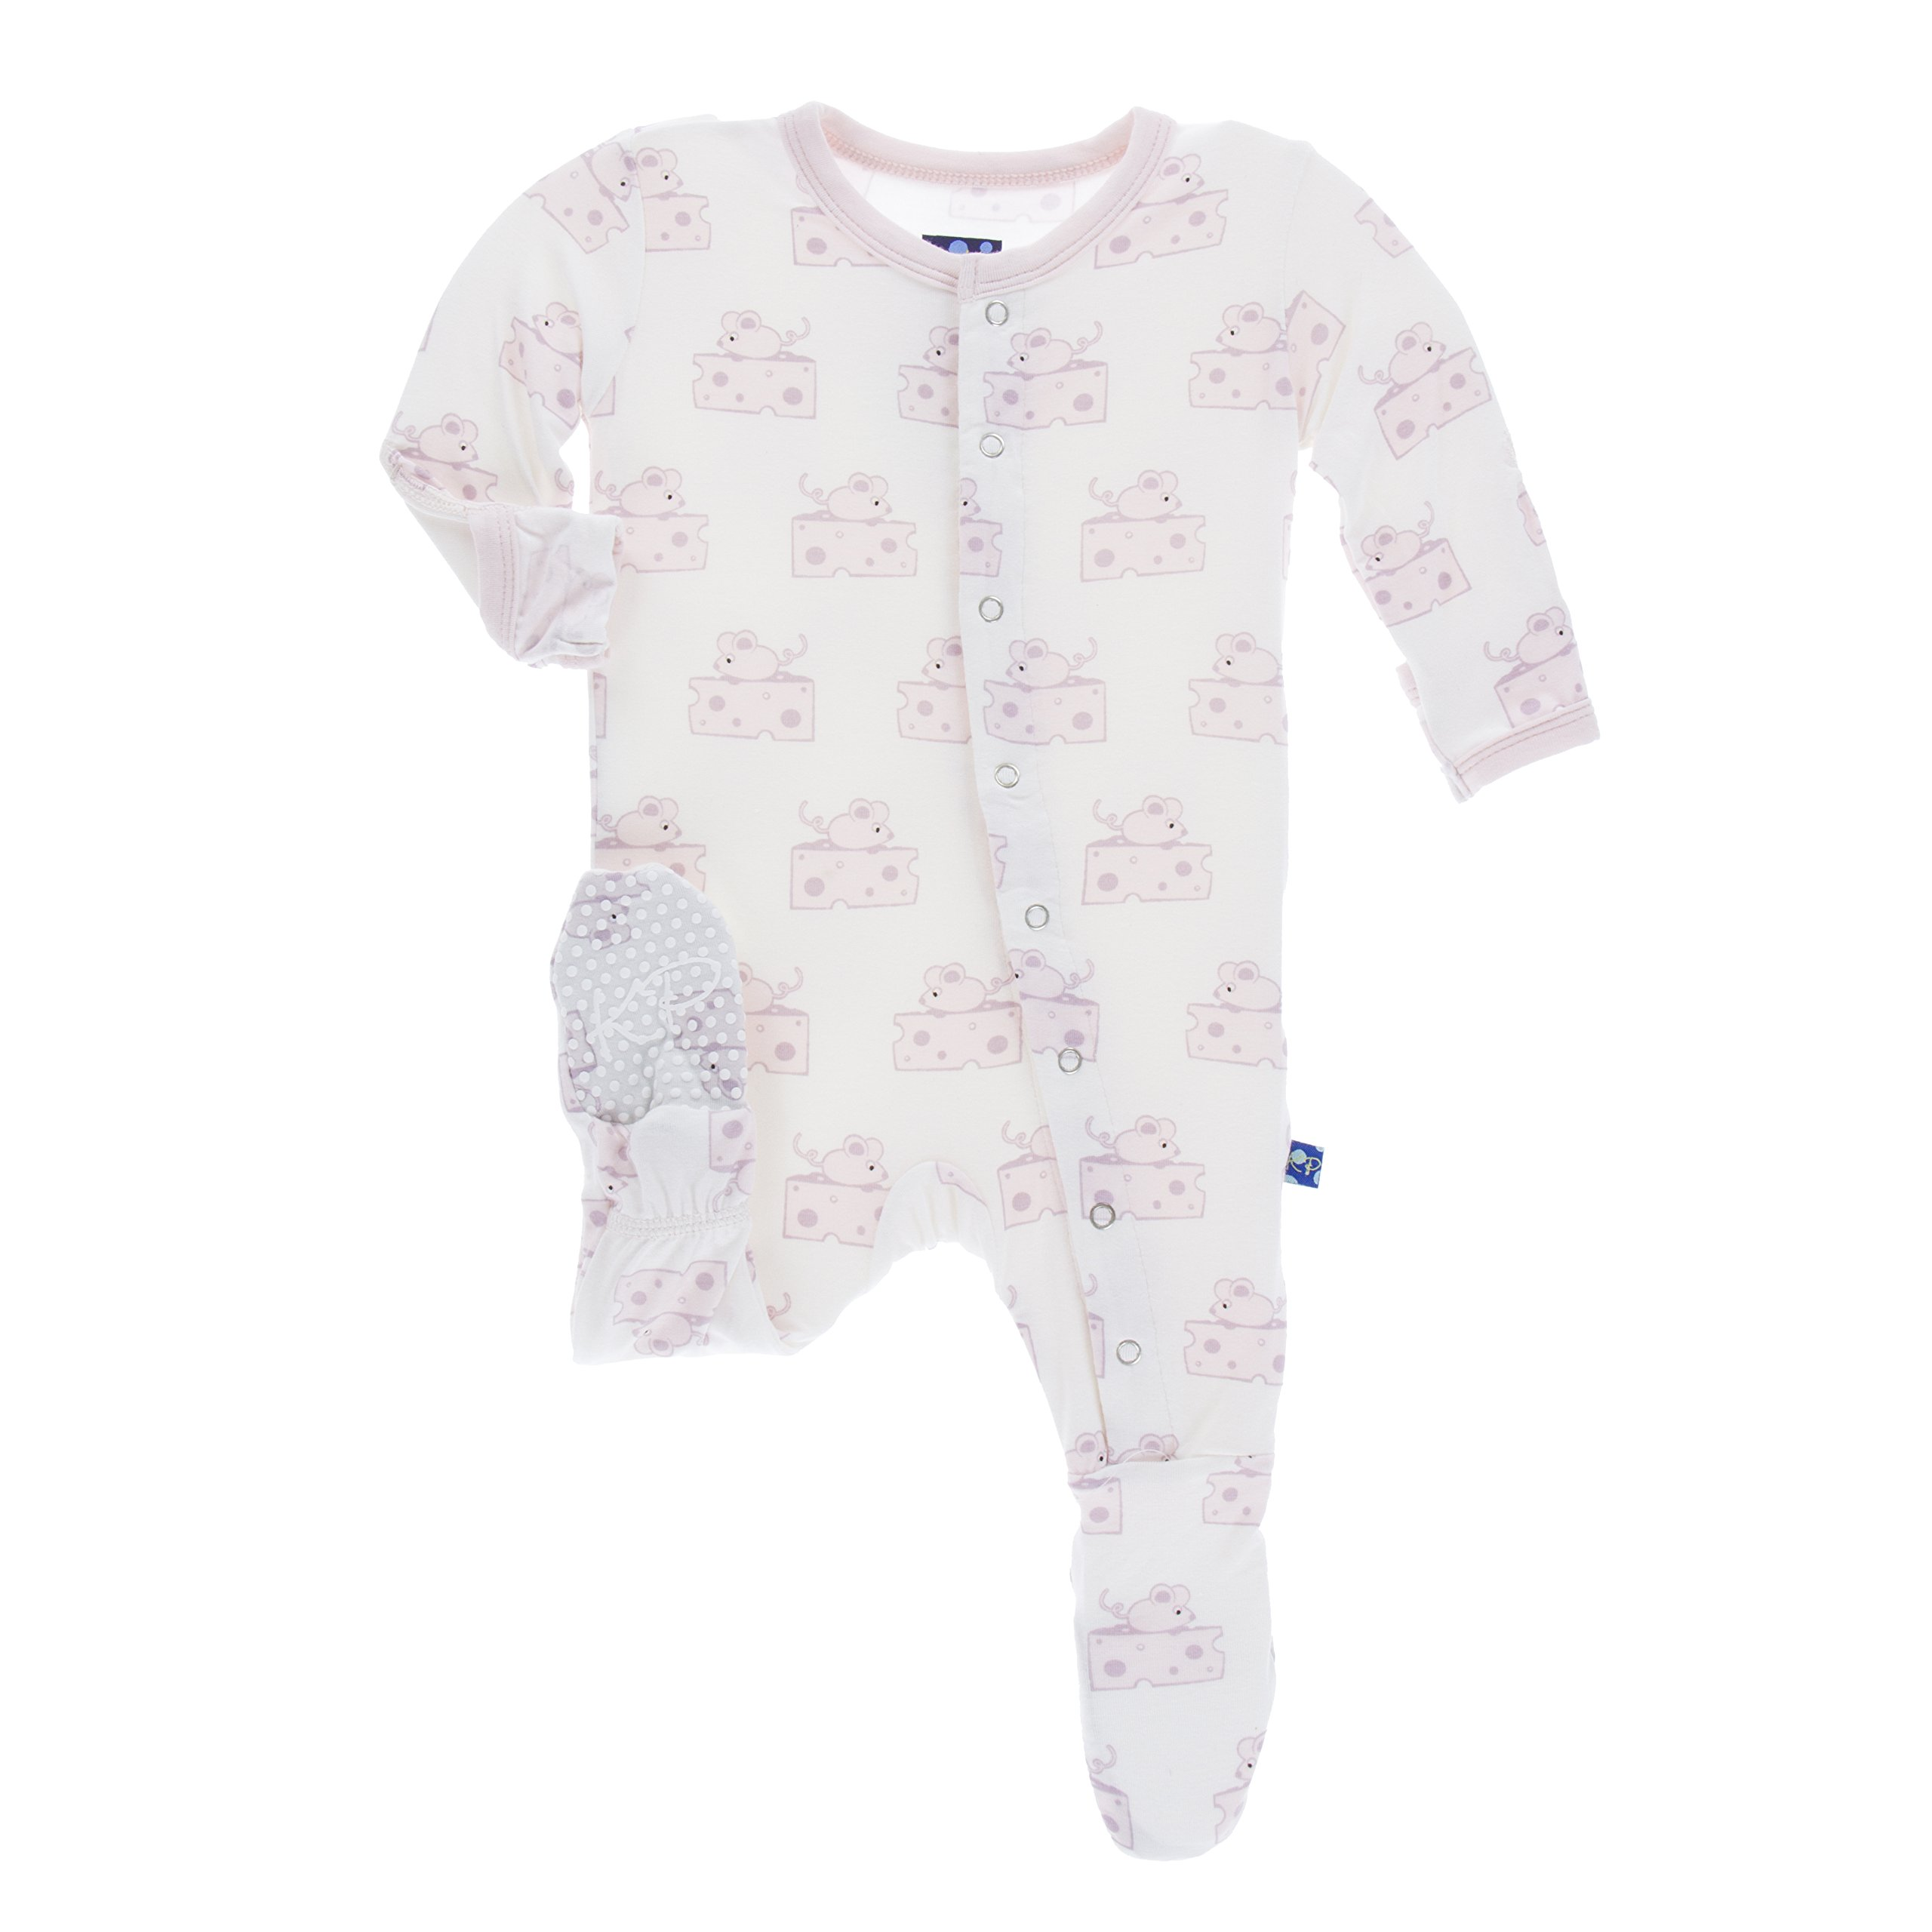 Kickee Pants Print Footie with Snaps in Natural Mouse & Cheese, 4T